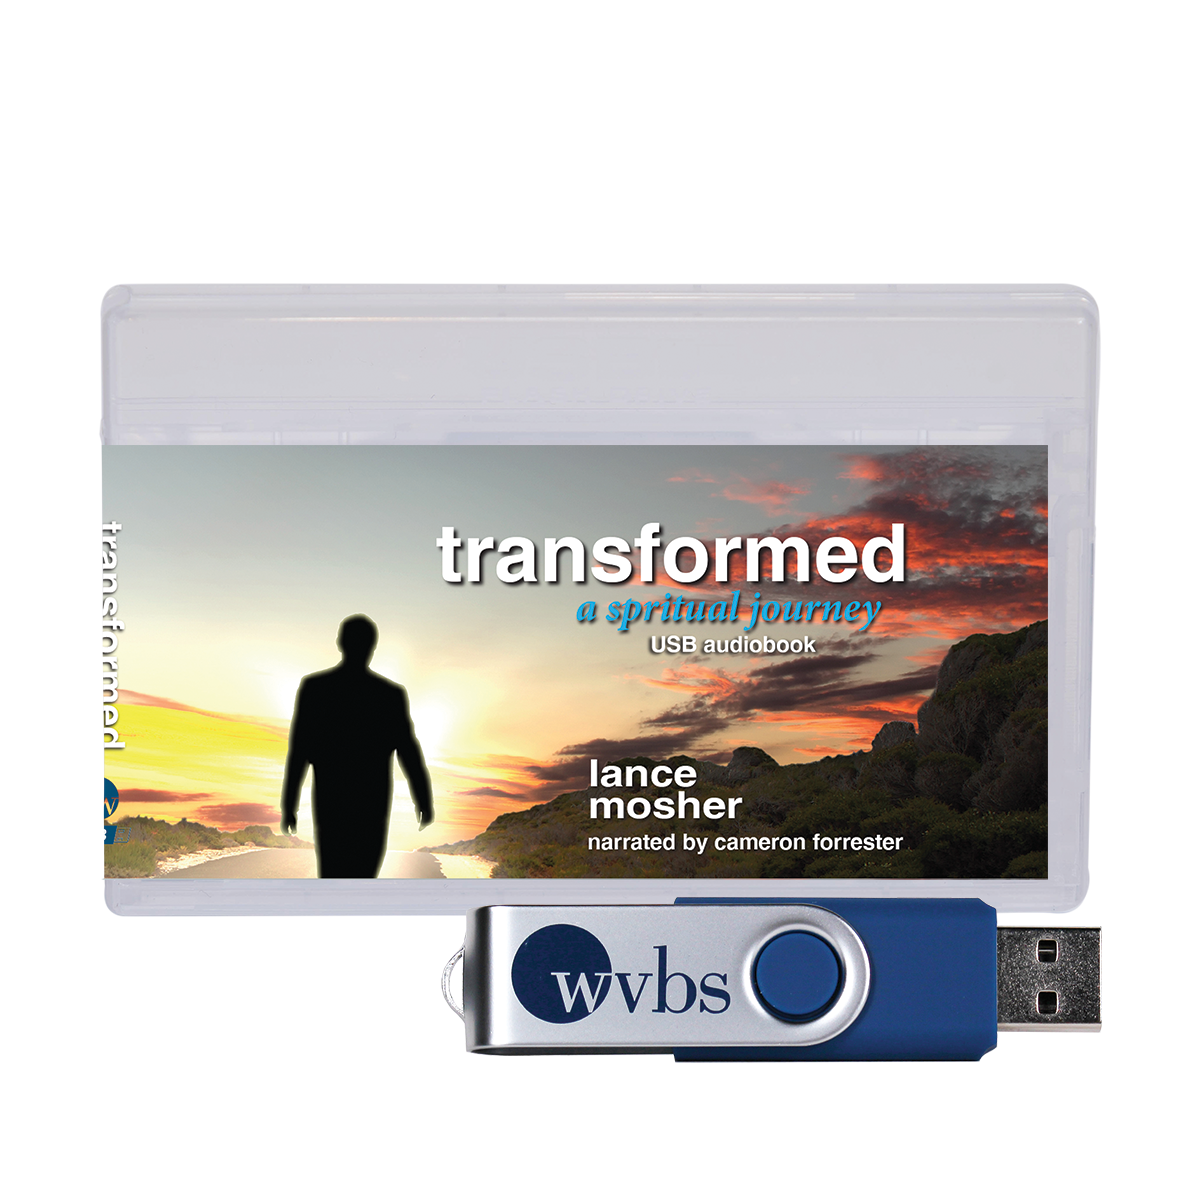 MP3USB Transformed A Spiritual Journey Audiobook Audio